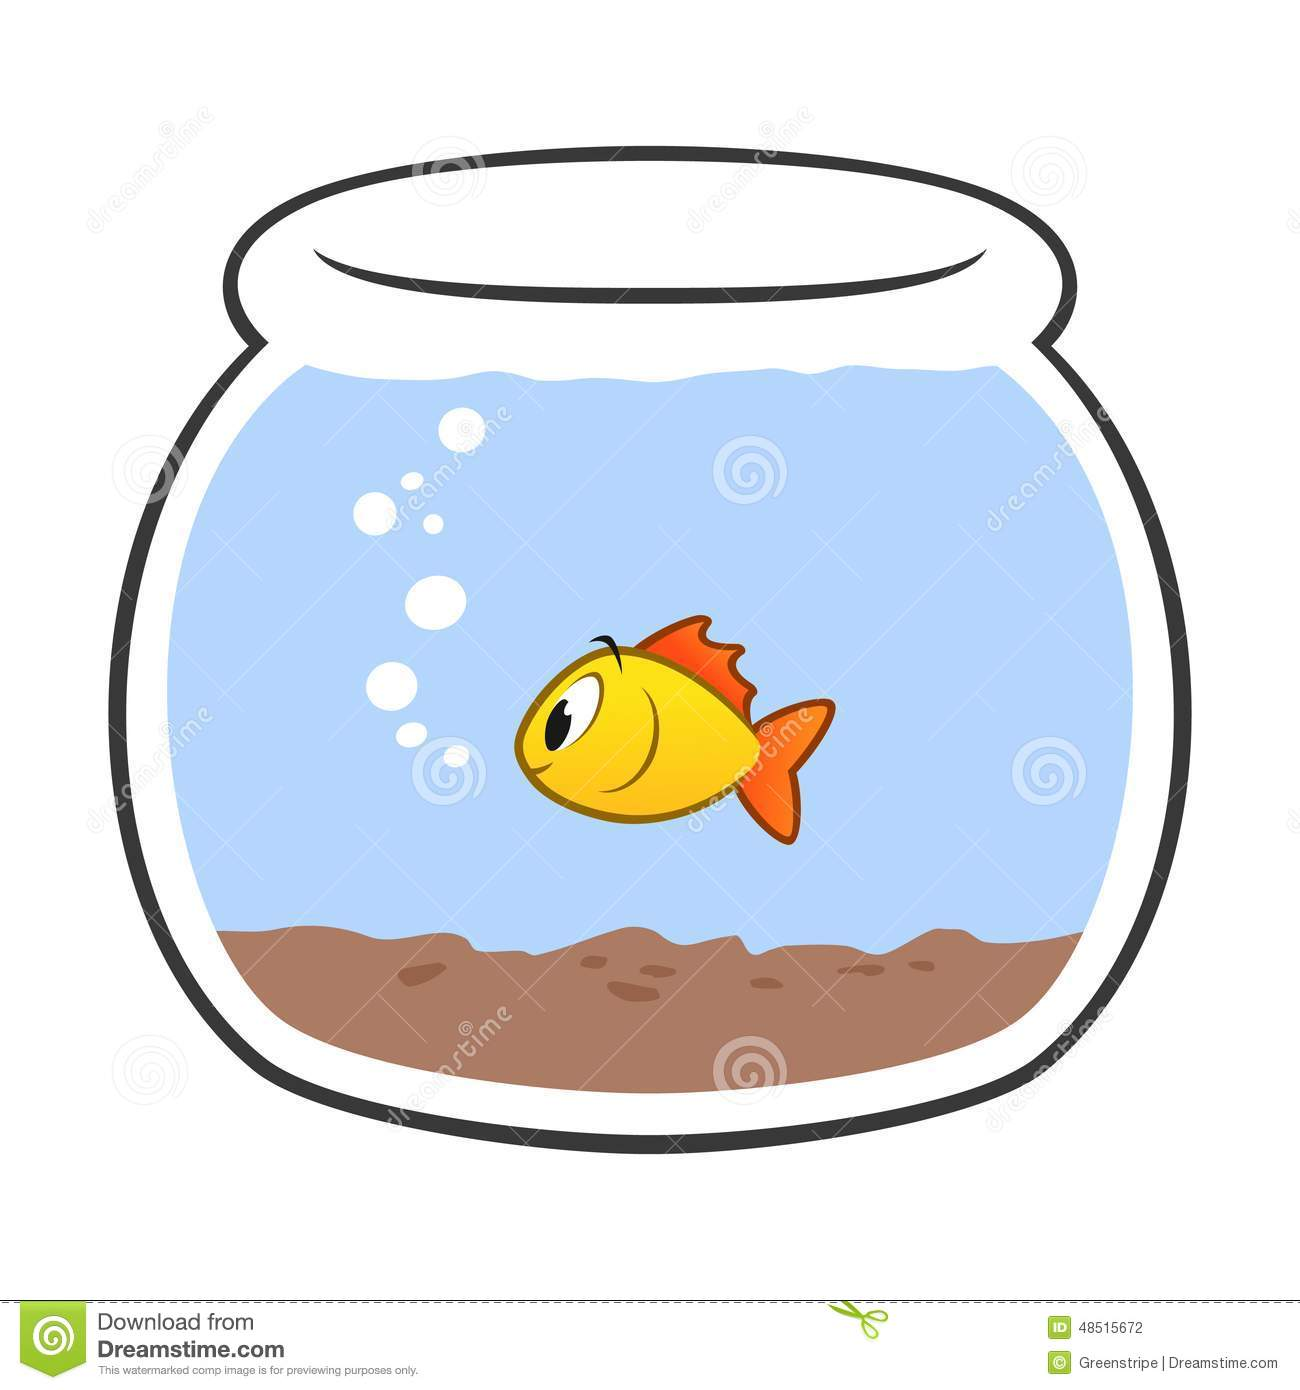 Fishbowl Clipart Goldfish Fish Bowl Clip Art Royalty Free Stock Photo Image  2741595 Designer Clipart